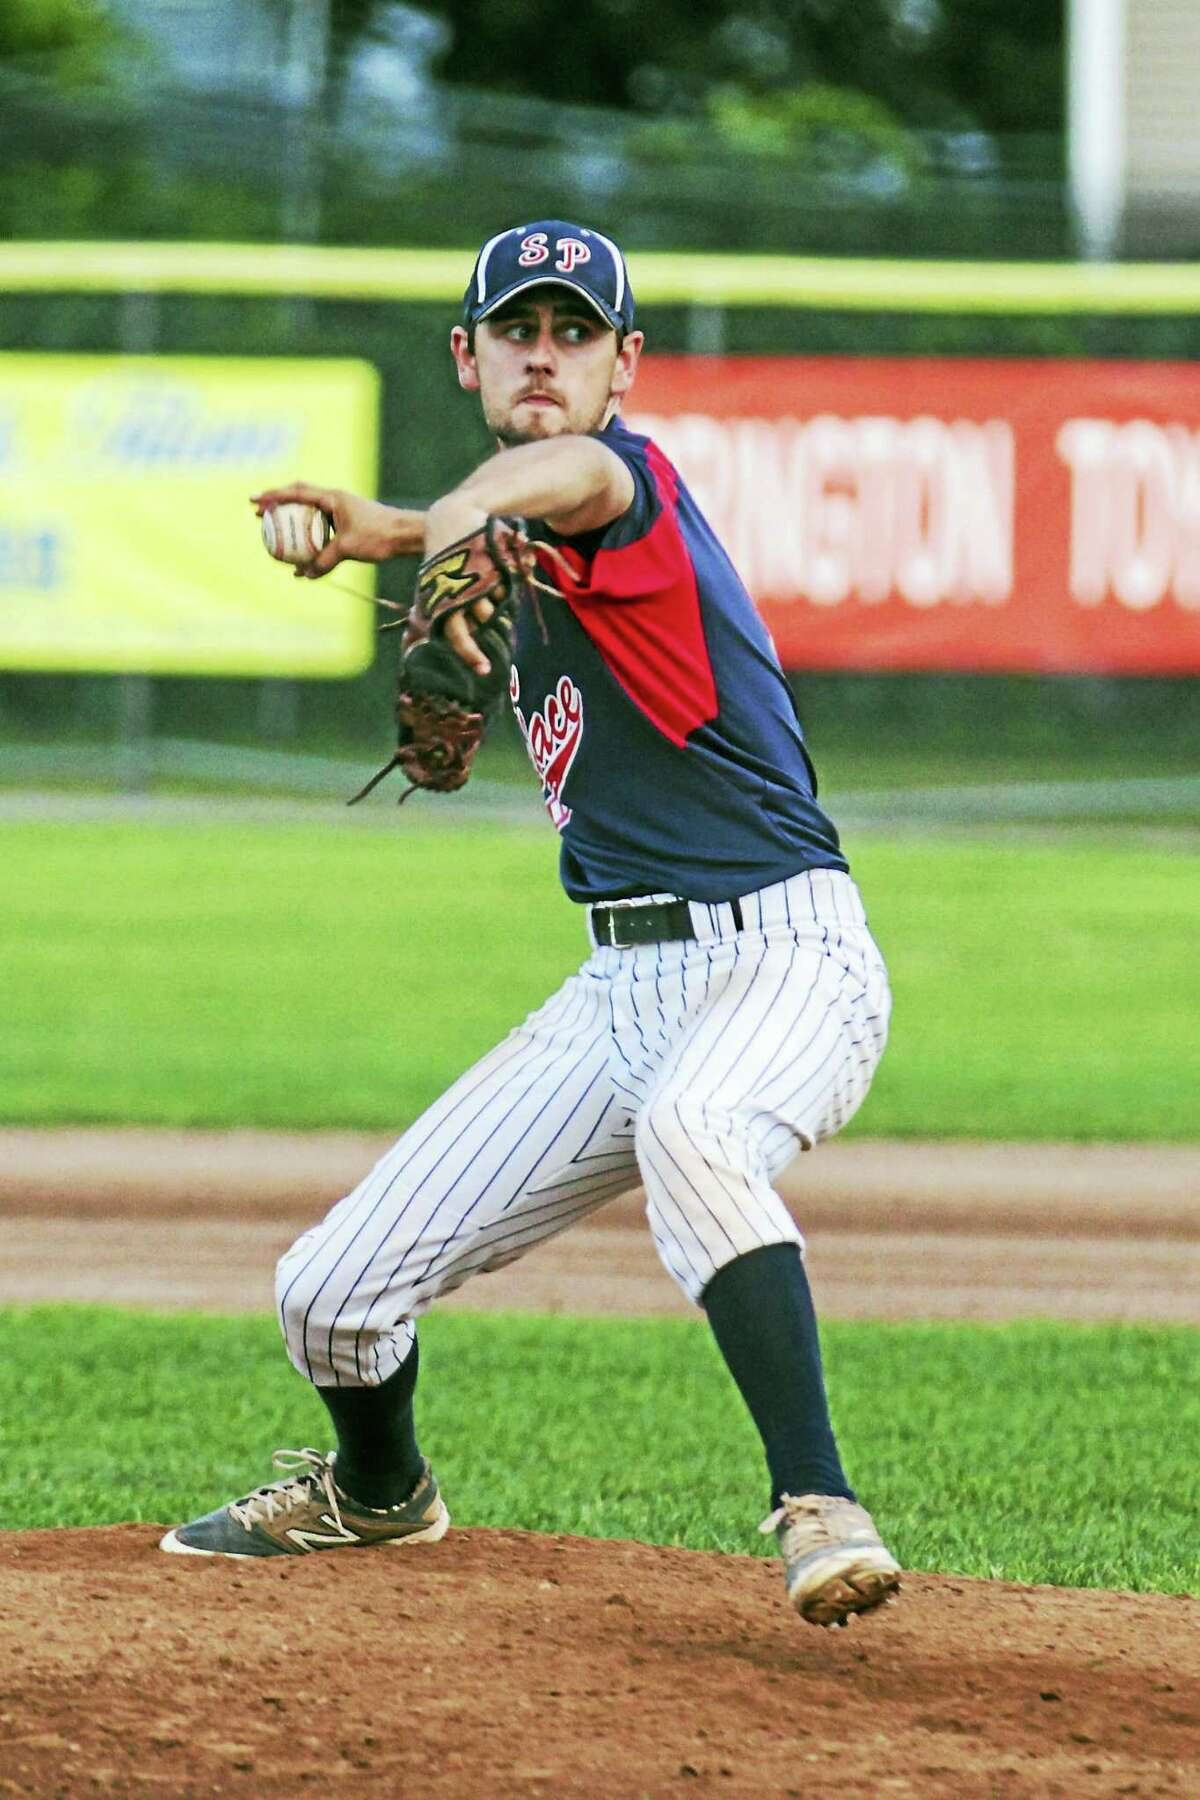 Photo by Marianne KillackeyTorrington's Josh Rubino held steady through a combined nine errors in Sports Palace's second-game win in a double header split against New Milford.